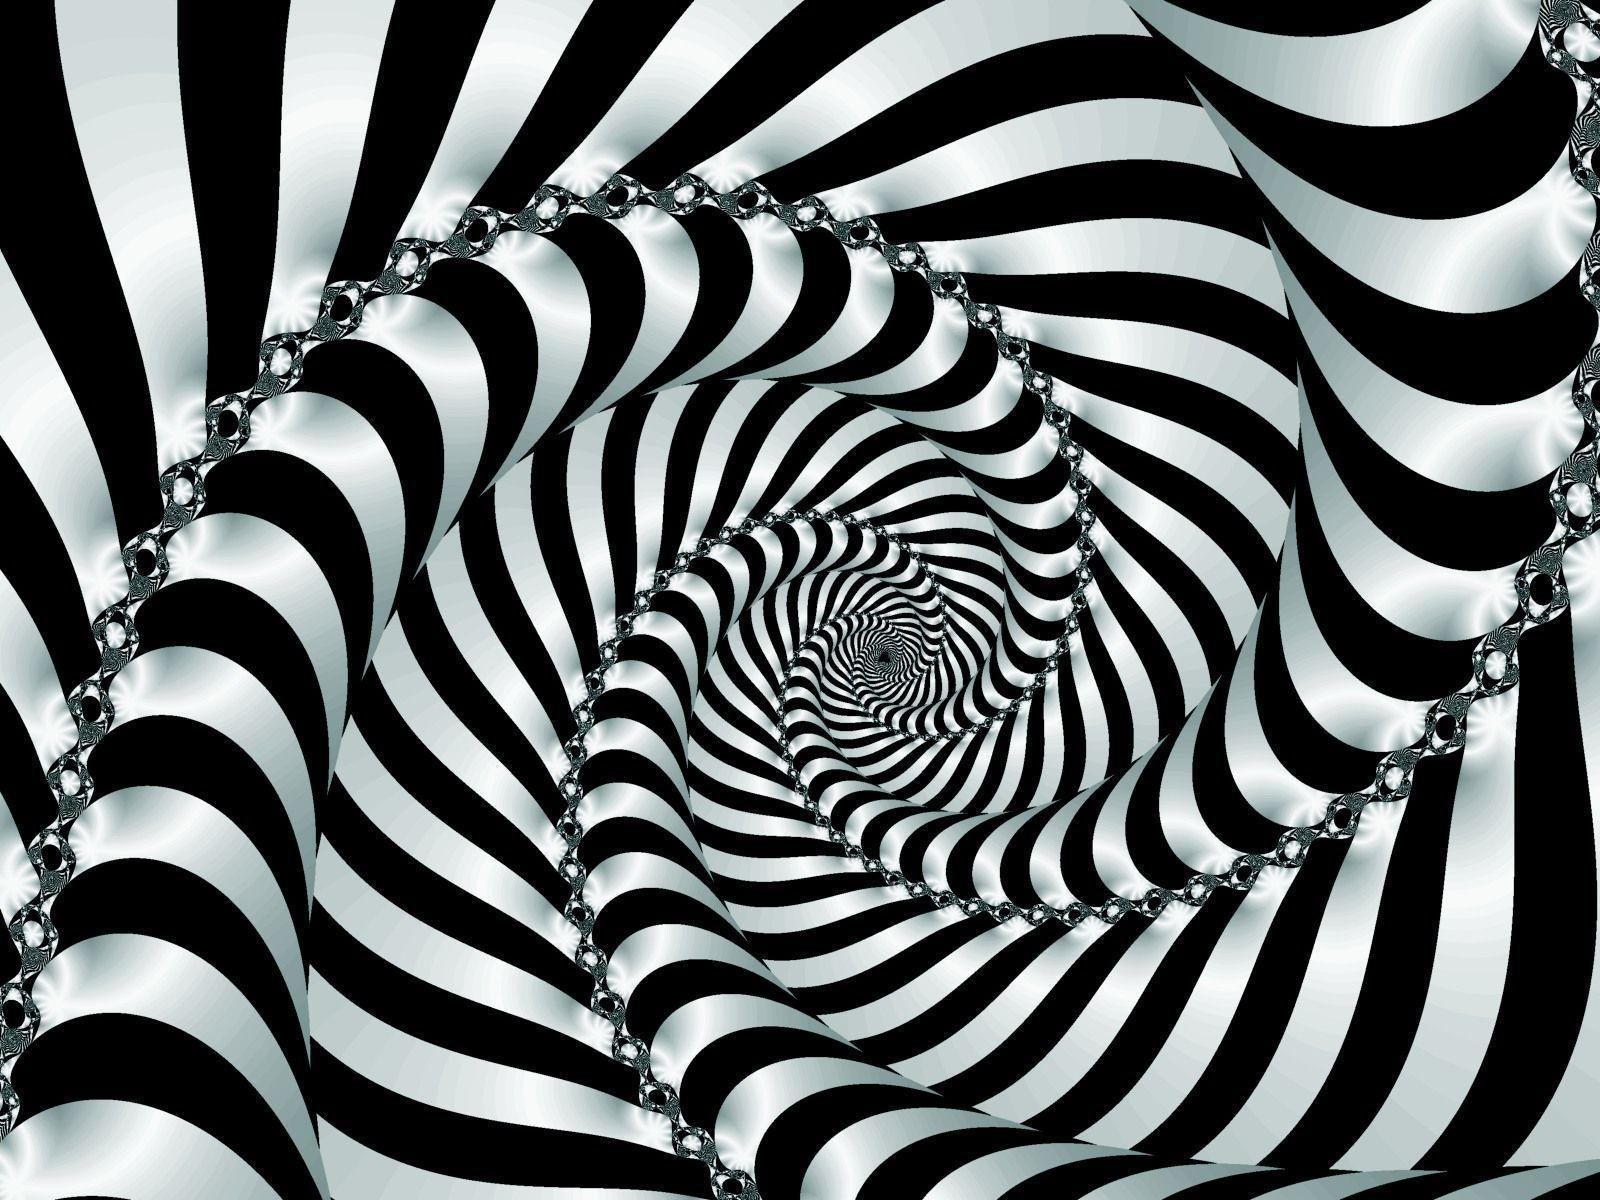 Optical illusion wallpapers wallpaper cave for Animated optical illusions template